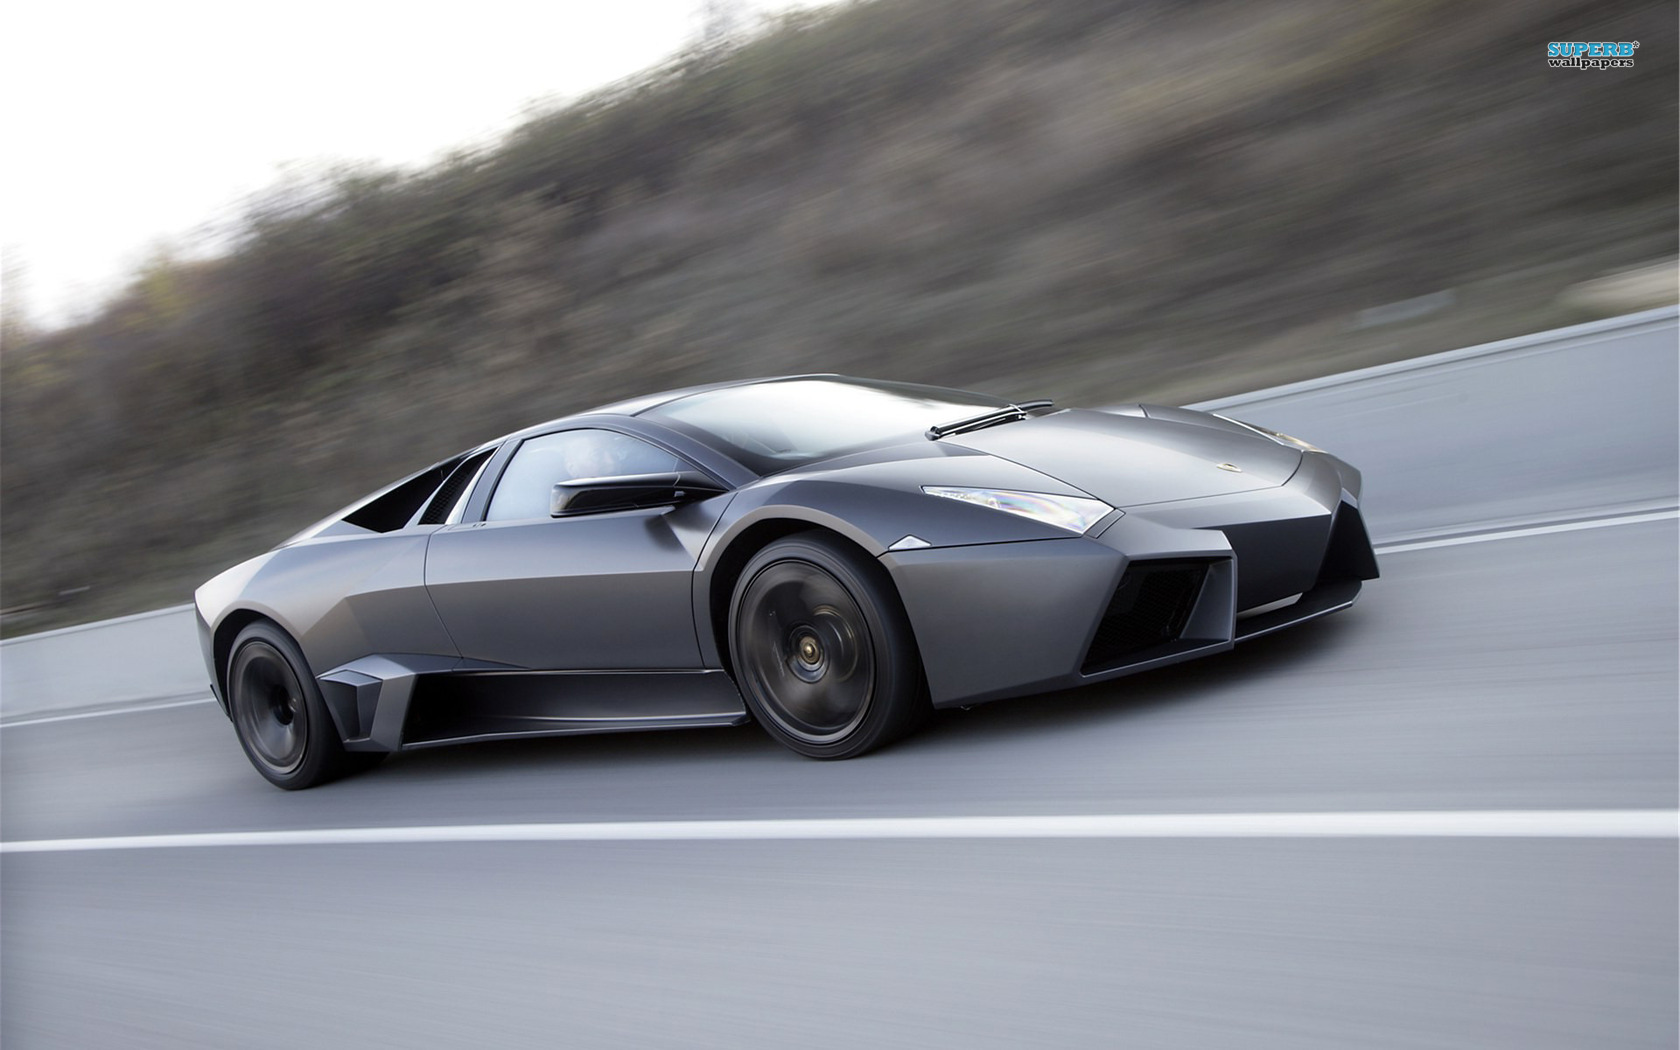 Copy of lamborghini-reventon-wallpaperwallpapers-acer-aspire-one-for-symphonic-tv-lamborghini-reventon-p-aifnlmev